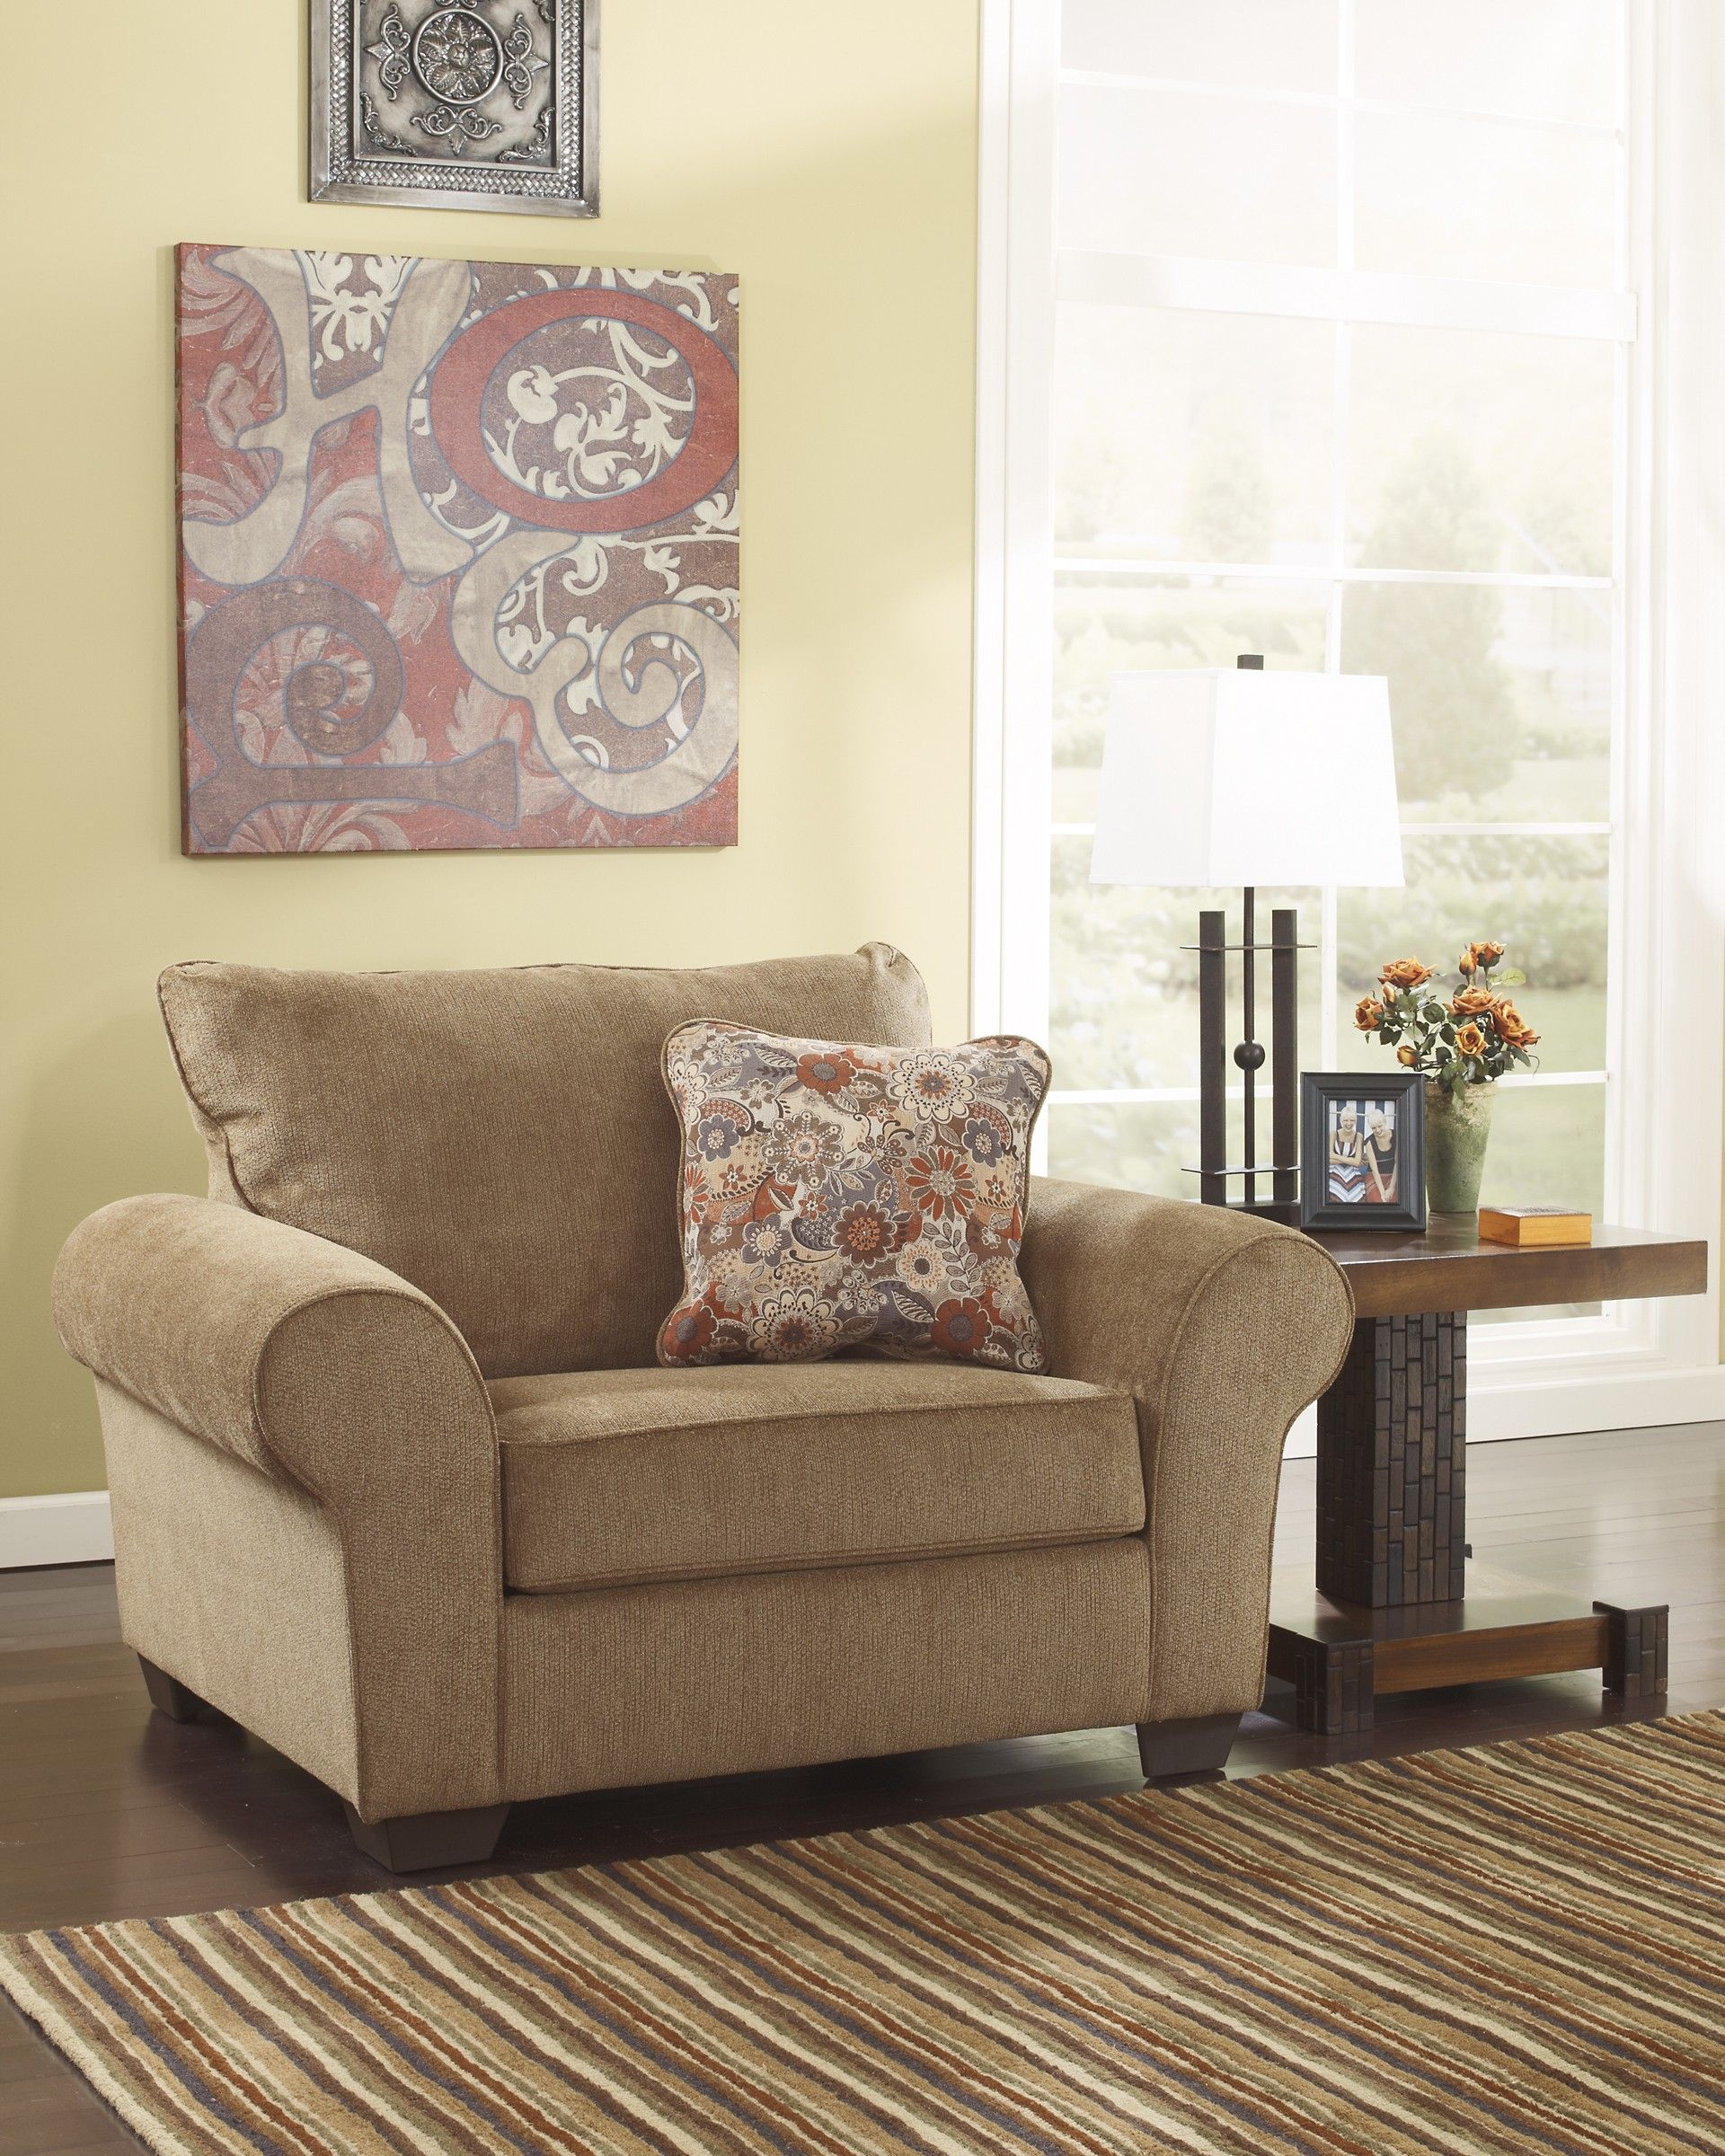 Ashley Furniture Galand 1170023 Umber Chair And A Half Comfy Chairs Comfy Reading Chair Chair And A Half